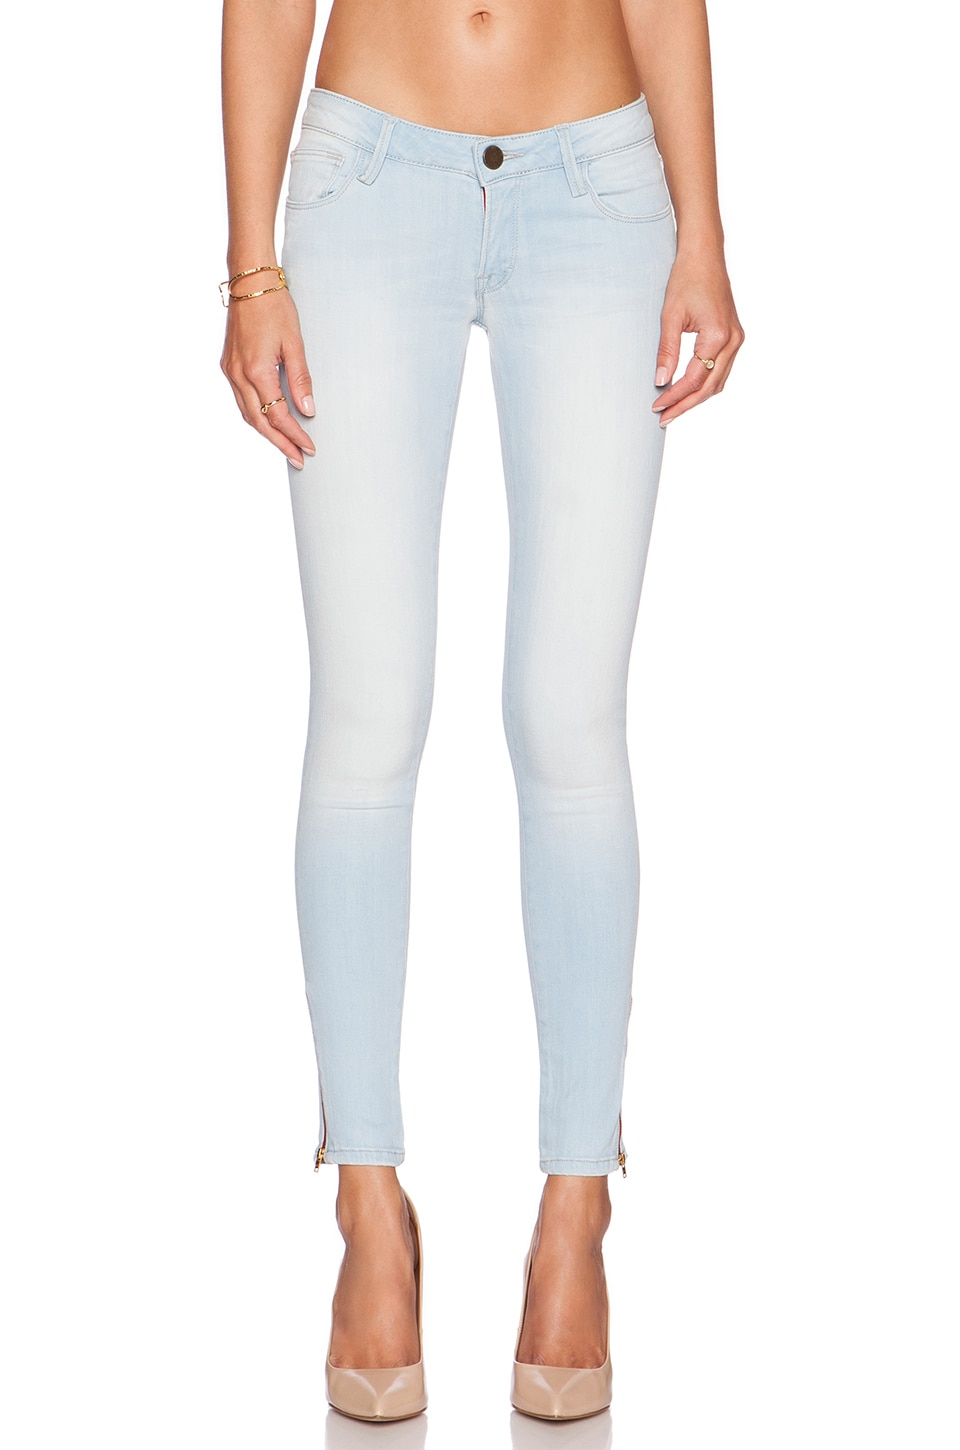 Midrise Skinny Cropped Jeans at REVOLVE